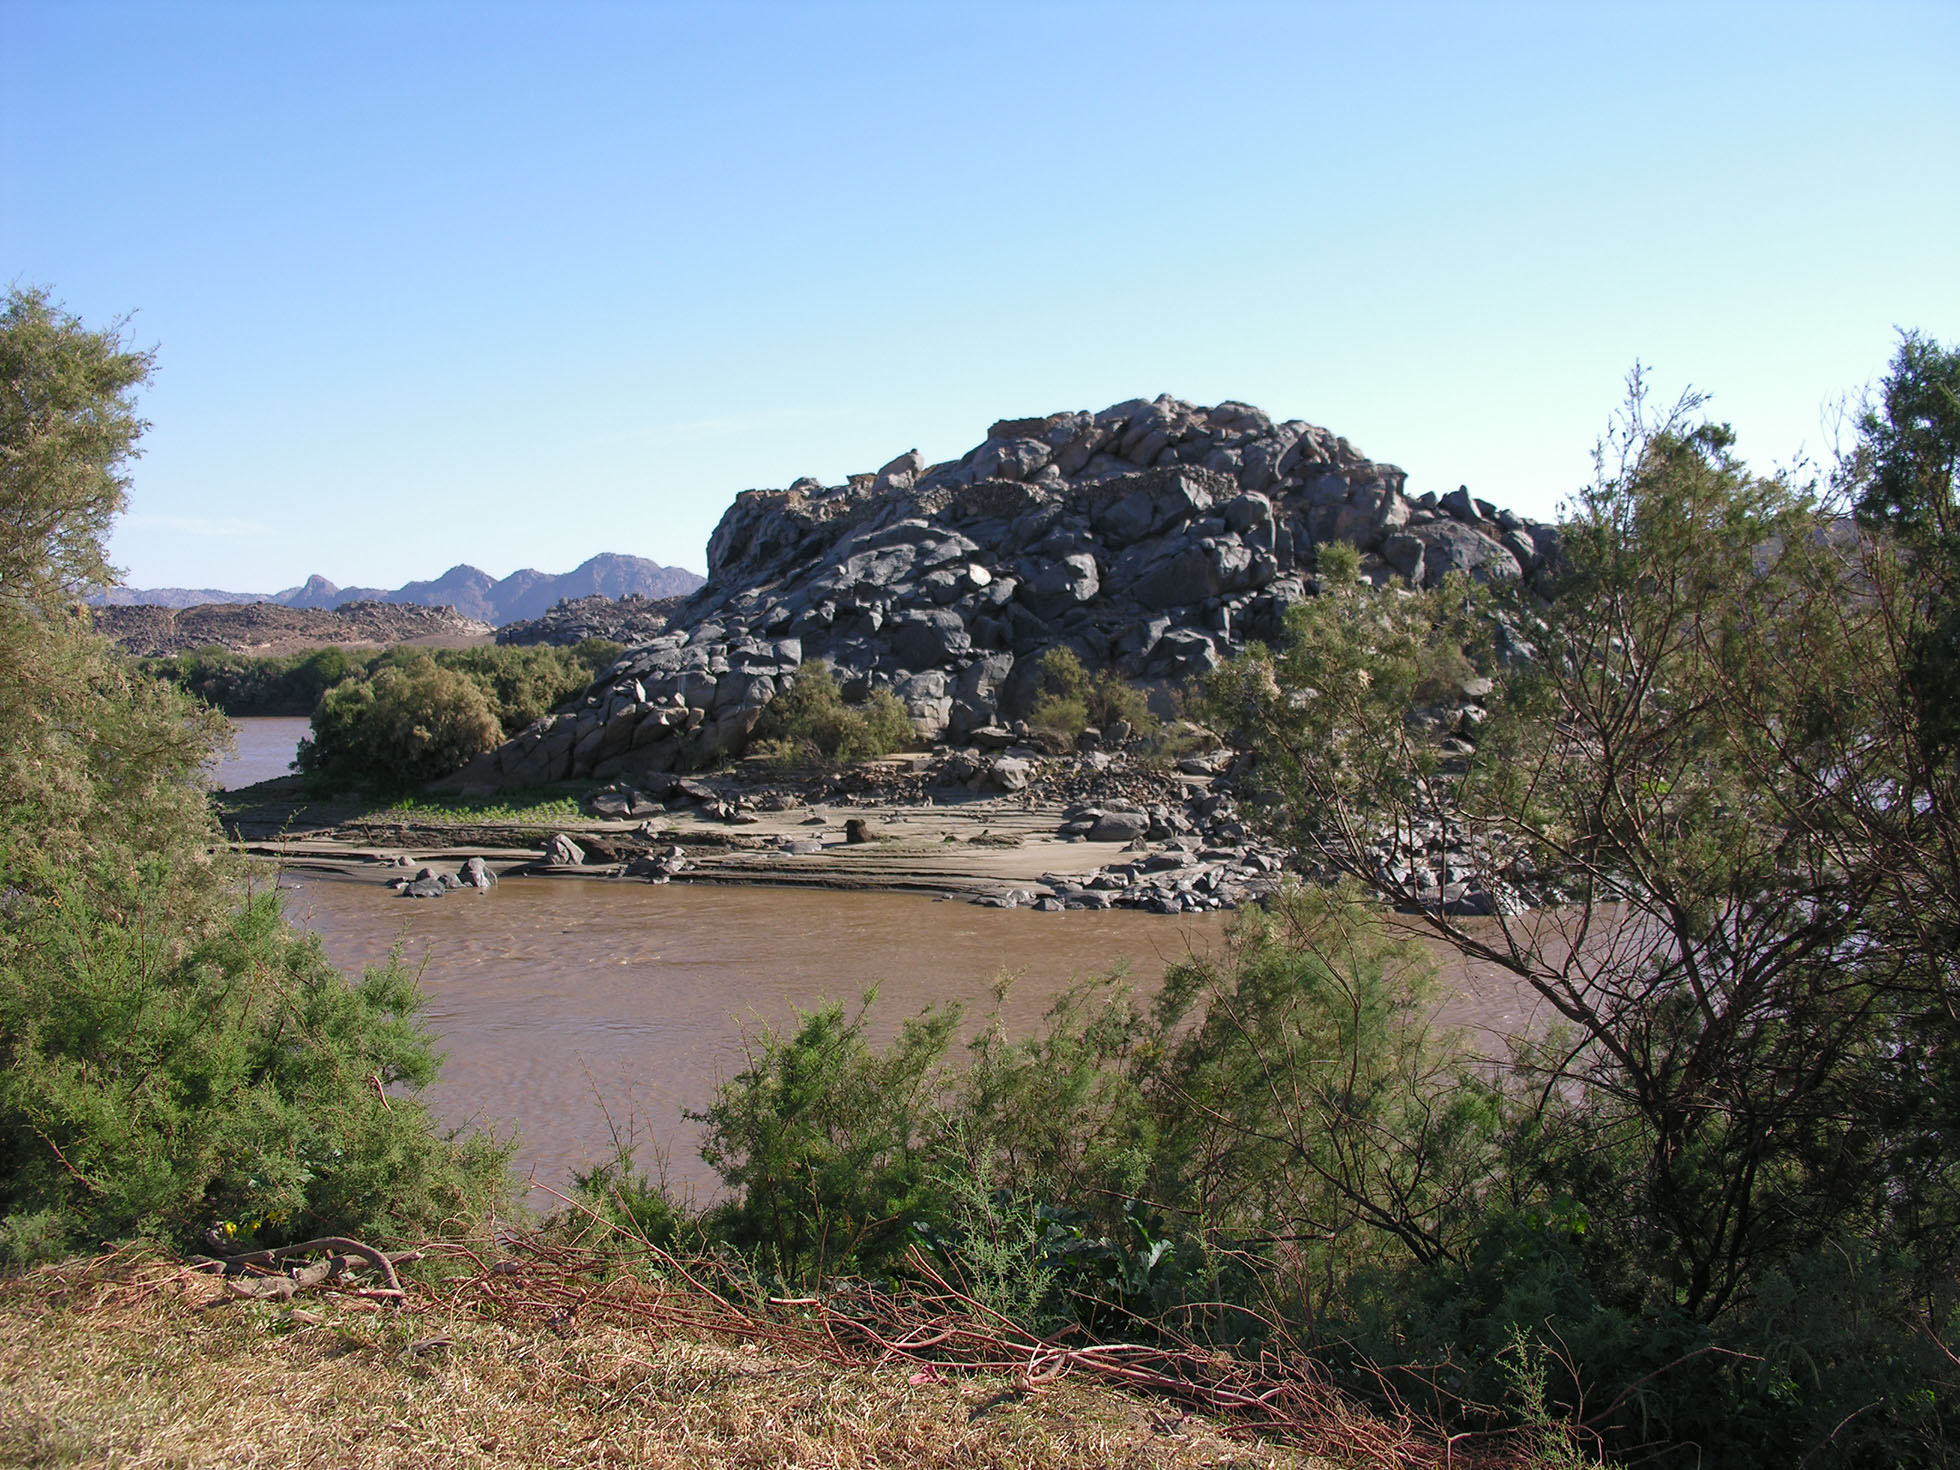 Photograph of the landscape of Northeast Kulubnarti, including the river and a large rock formation.